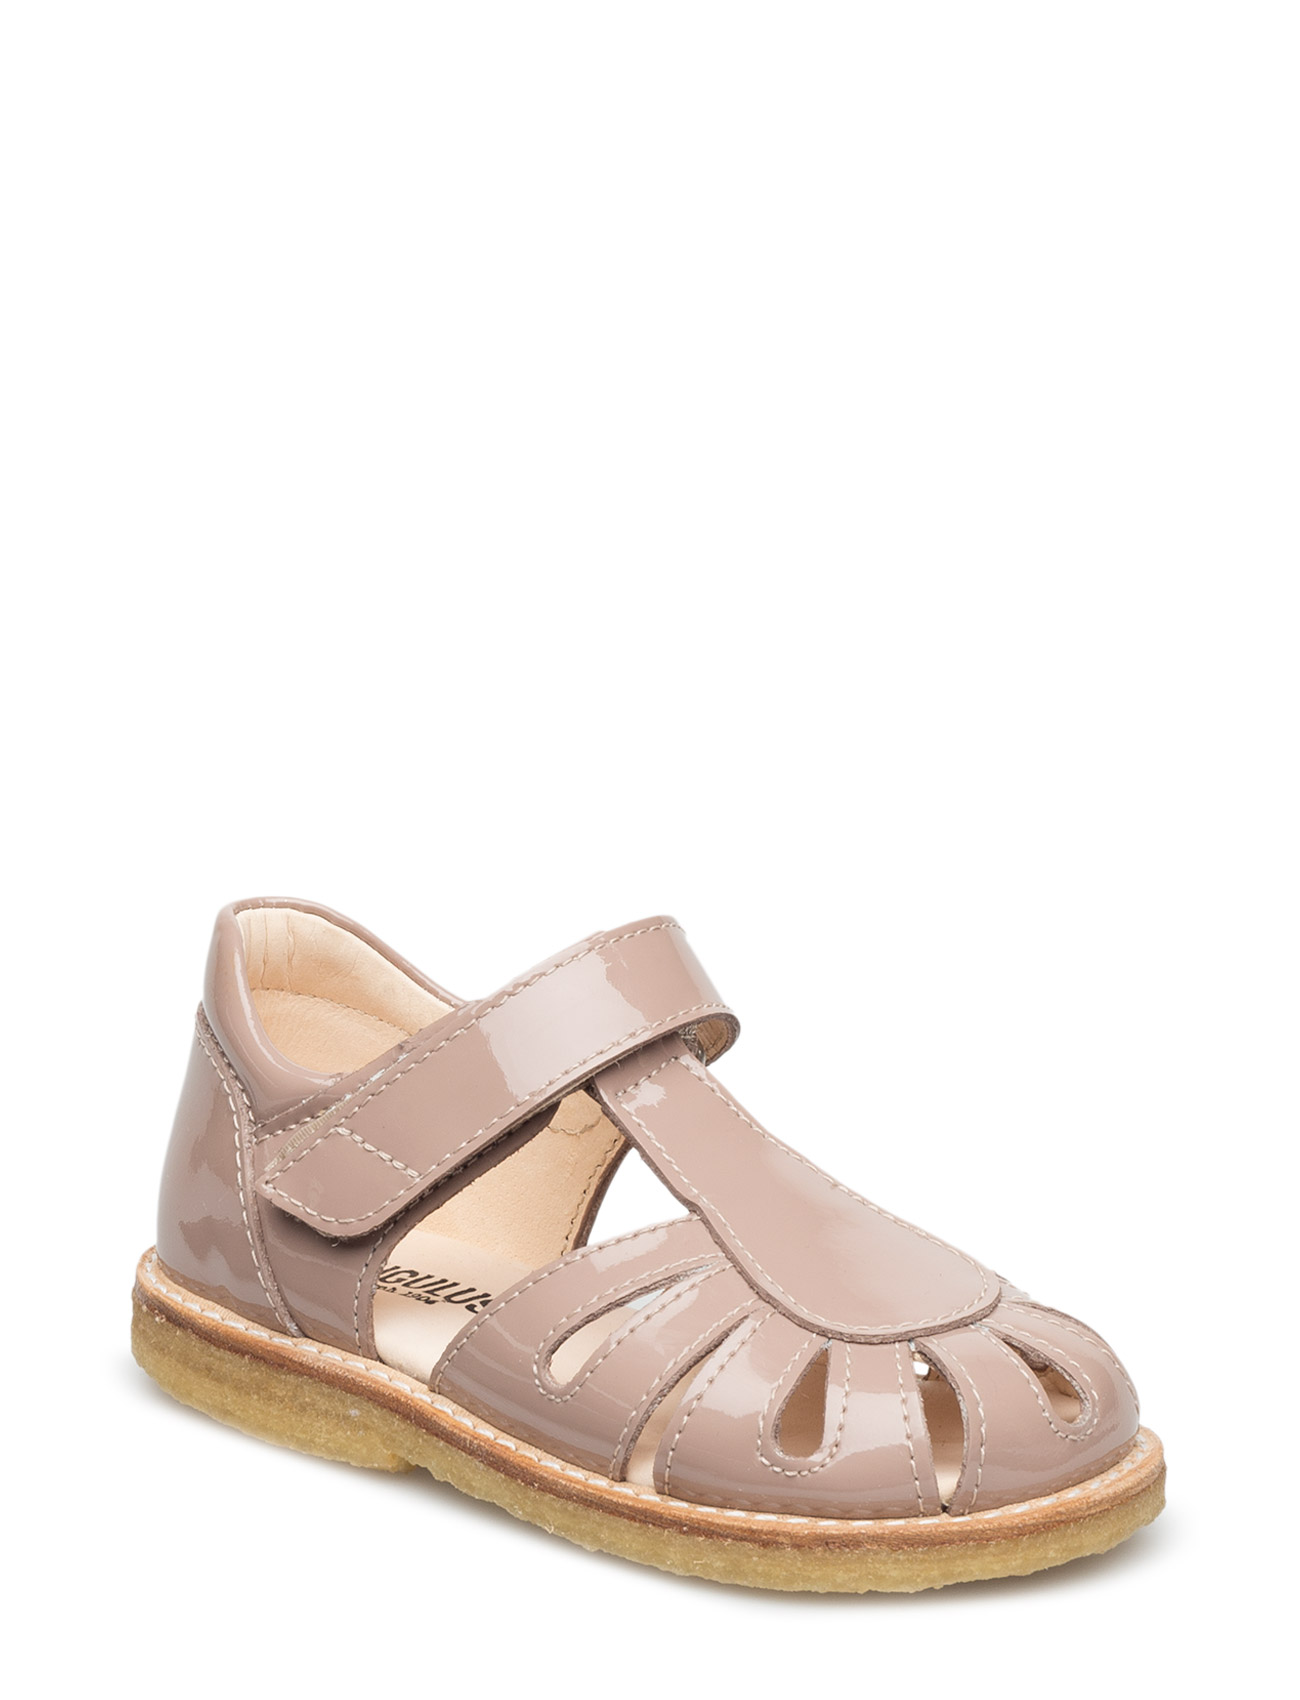 ANGULUS Sandals - flat - closed toe -  - 1387 ROSE